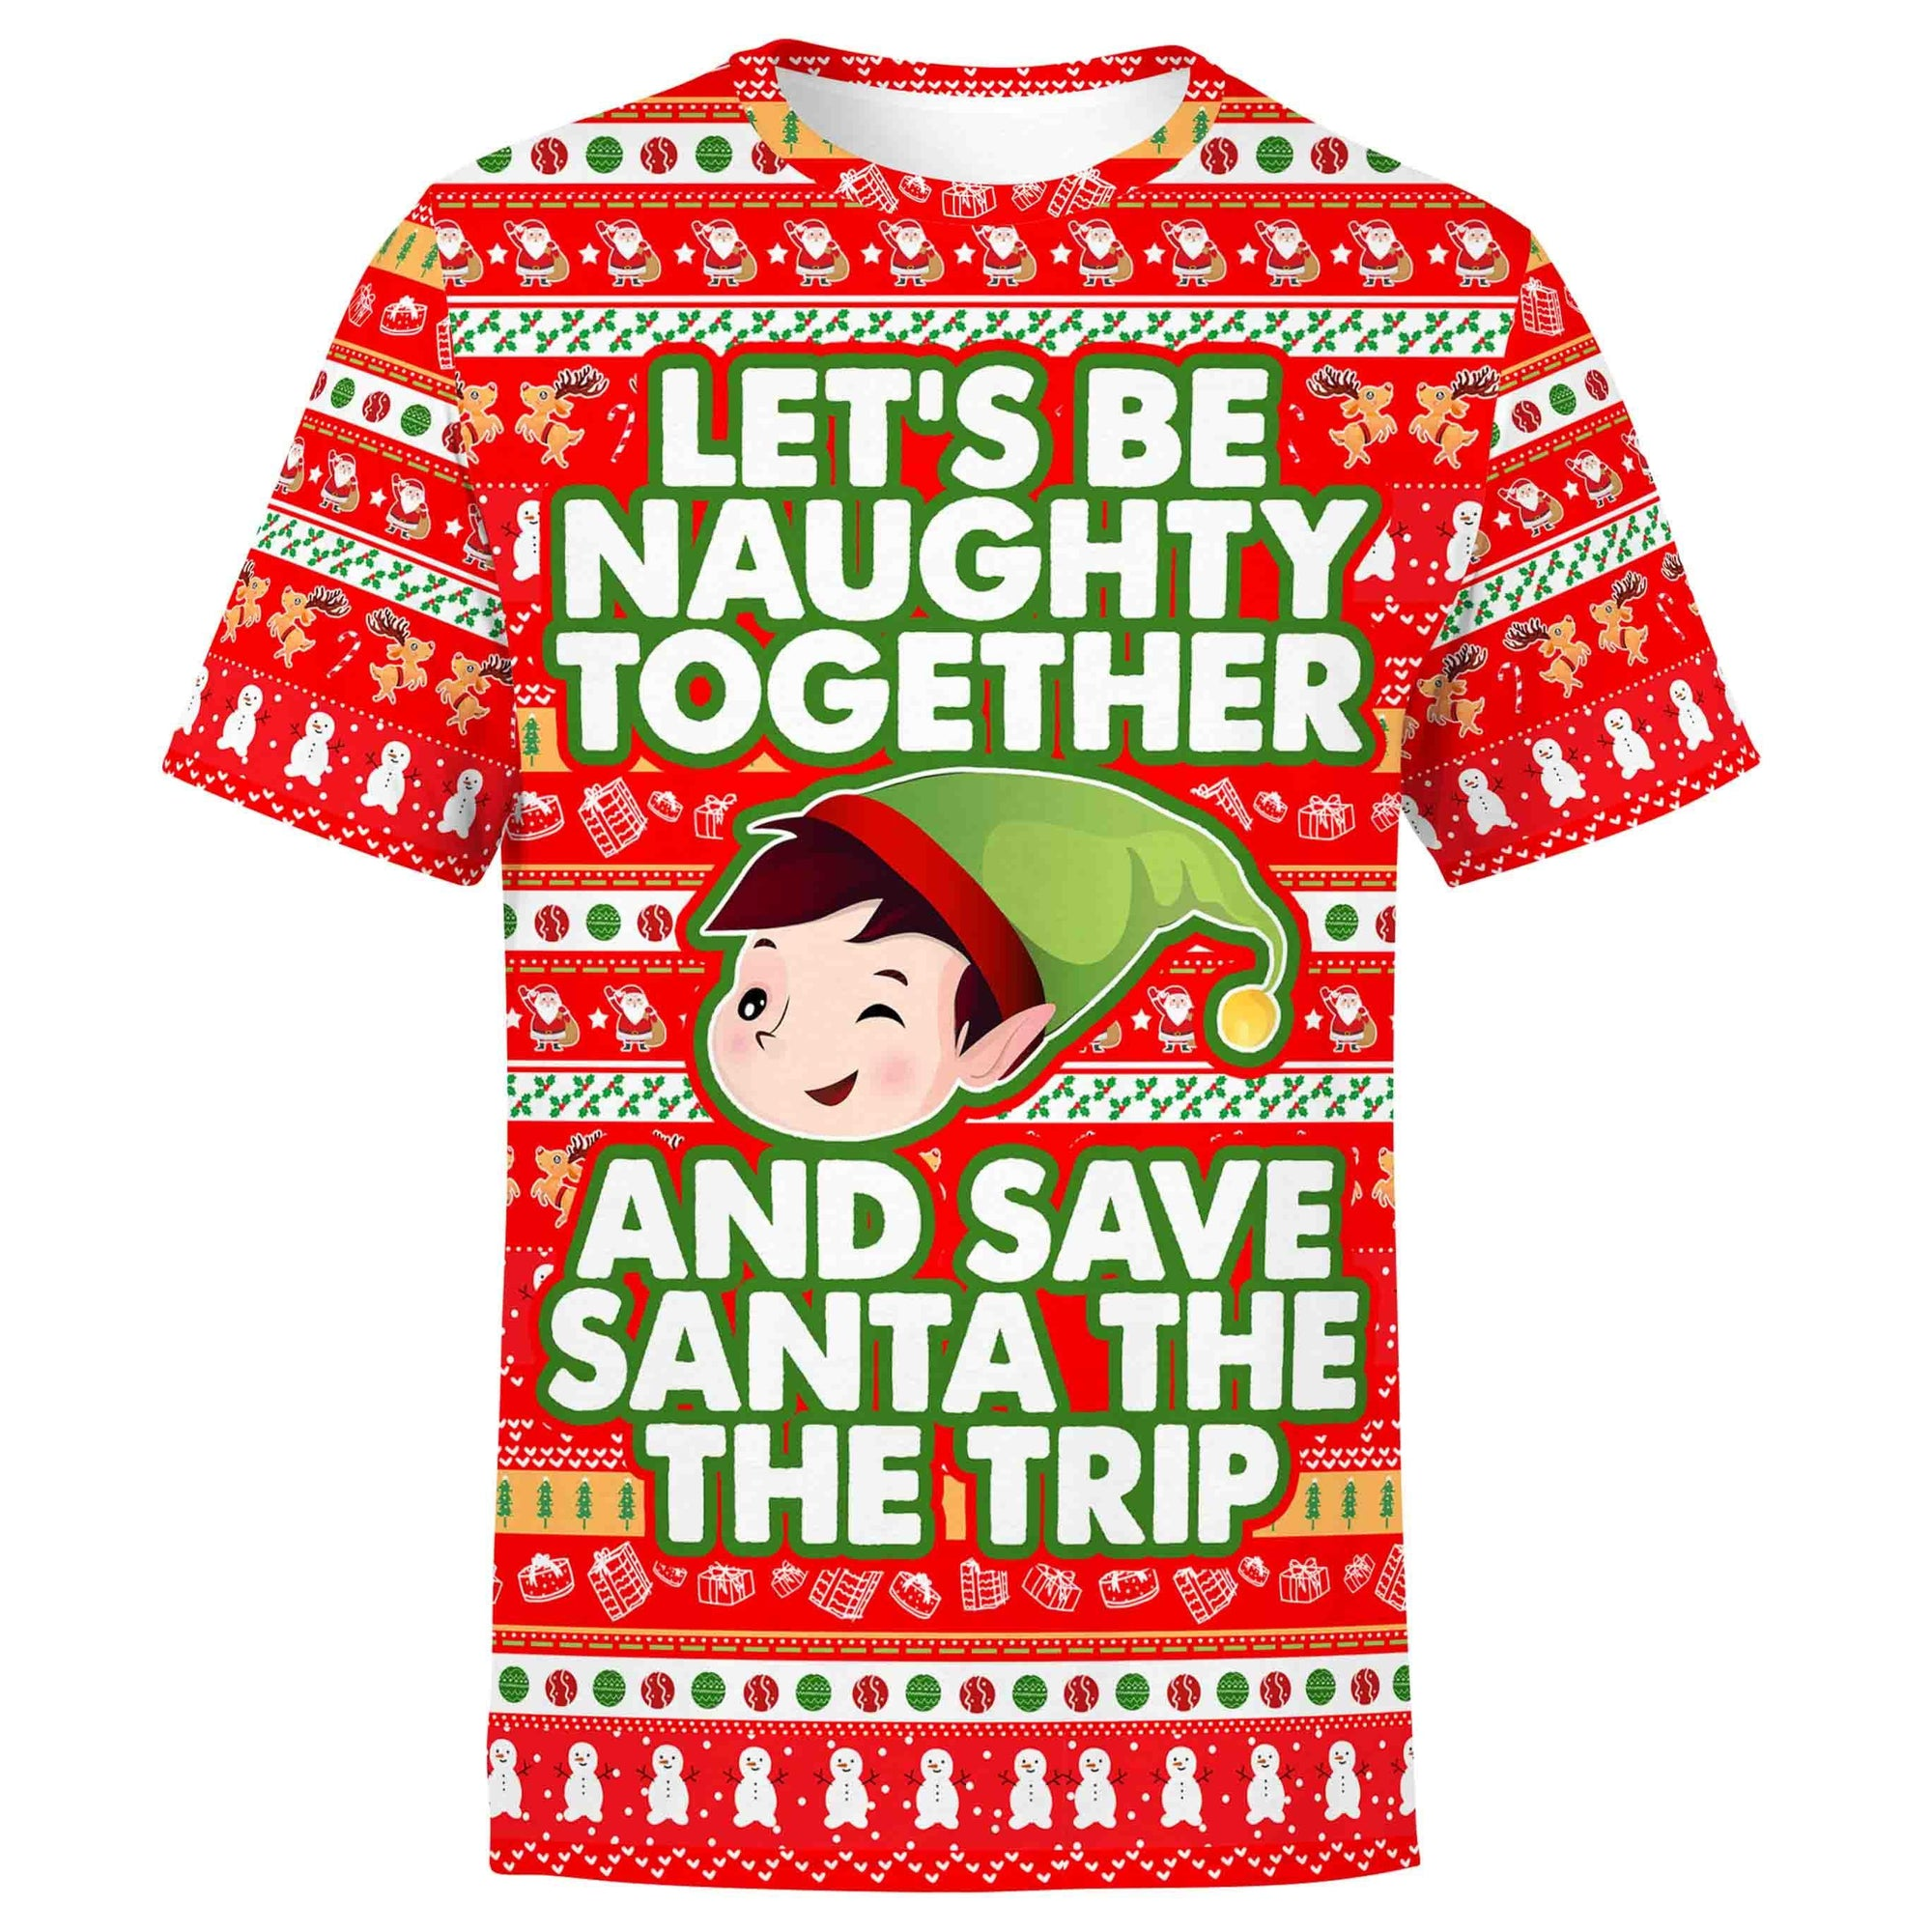 Lets Be Naughty Christmas Shirt